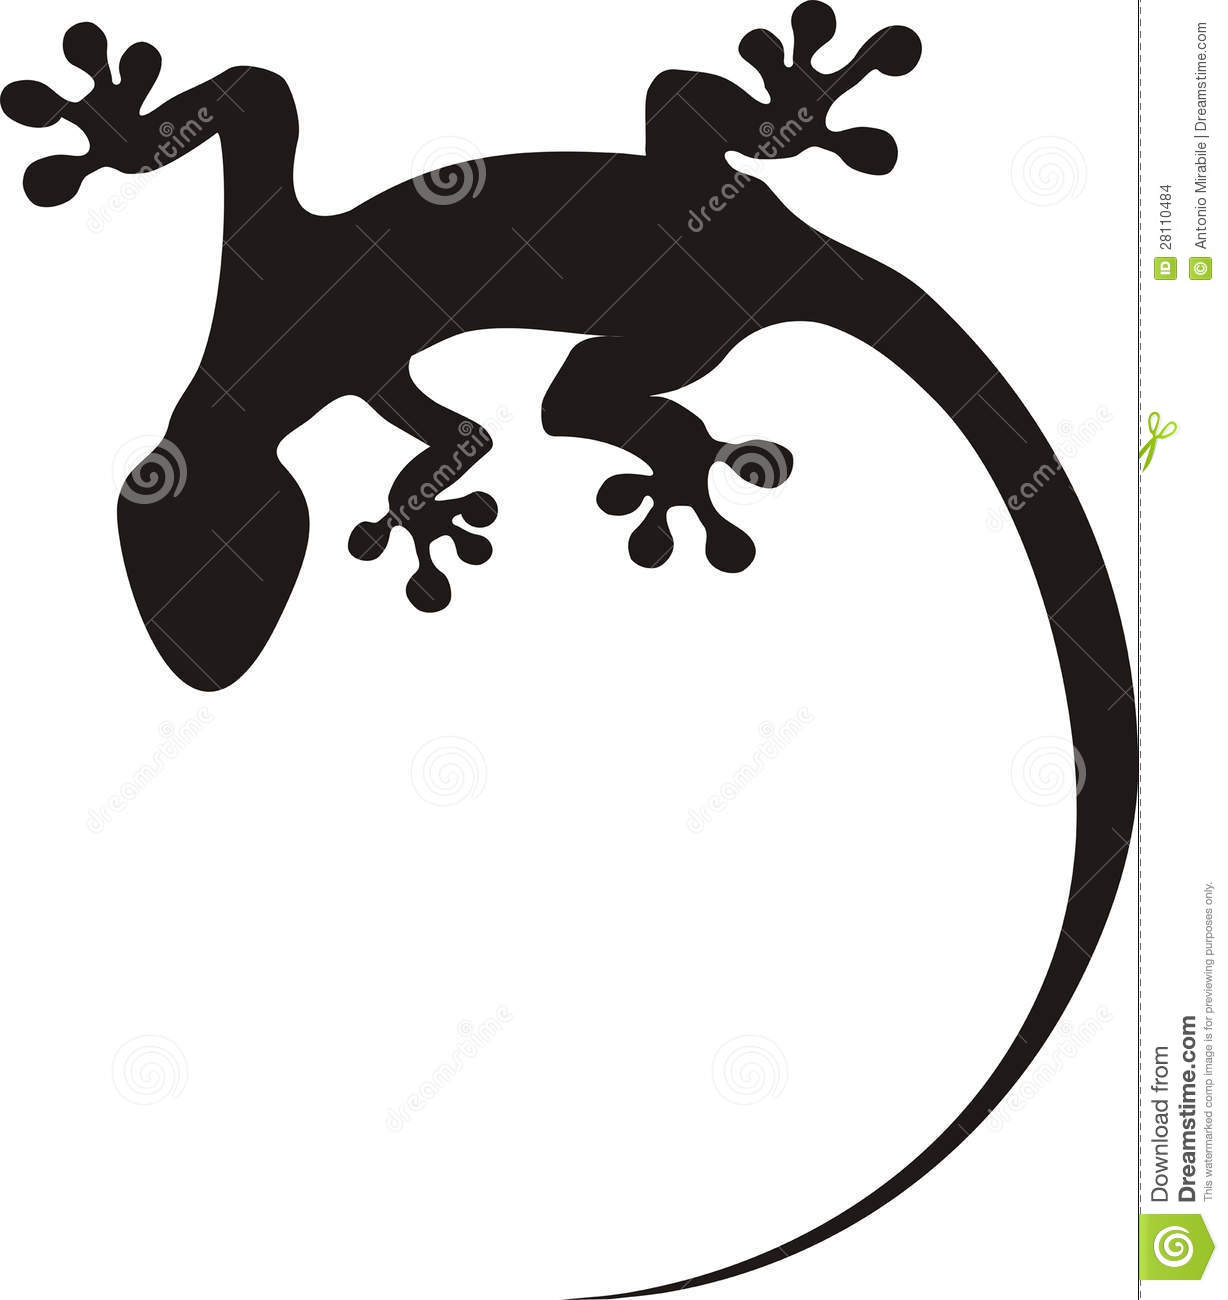 Gecko Tattoo Stock Images - Image: 28110484